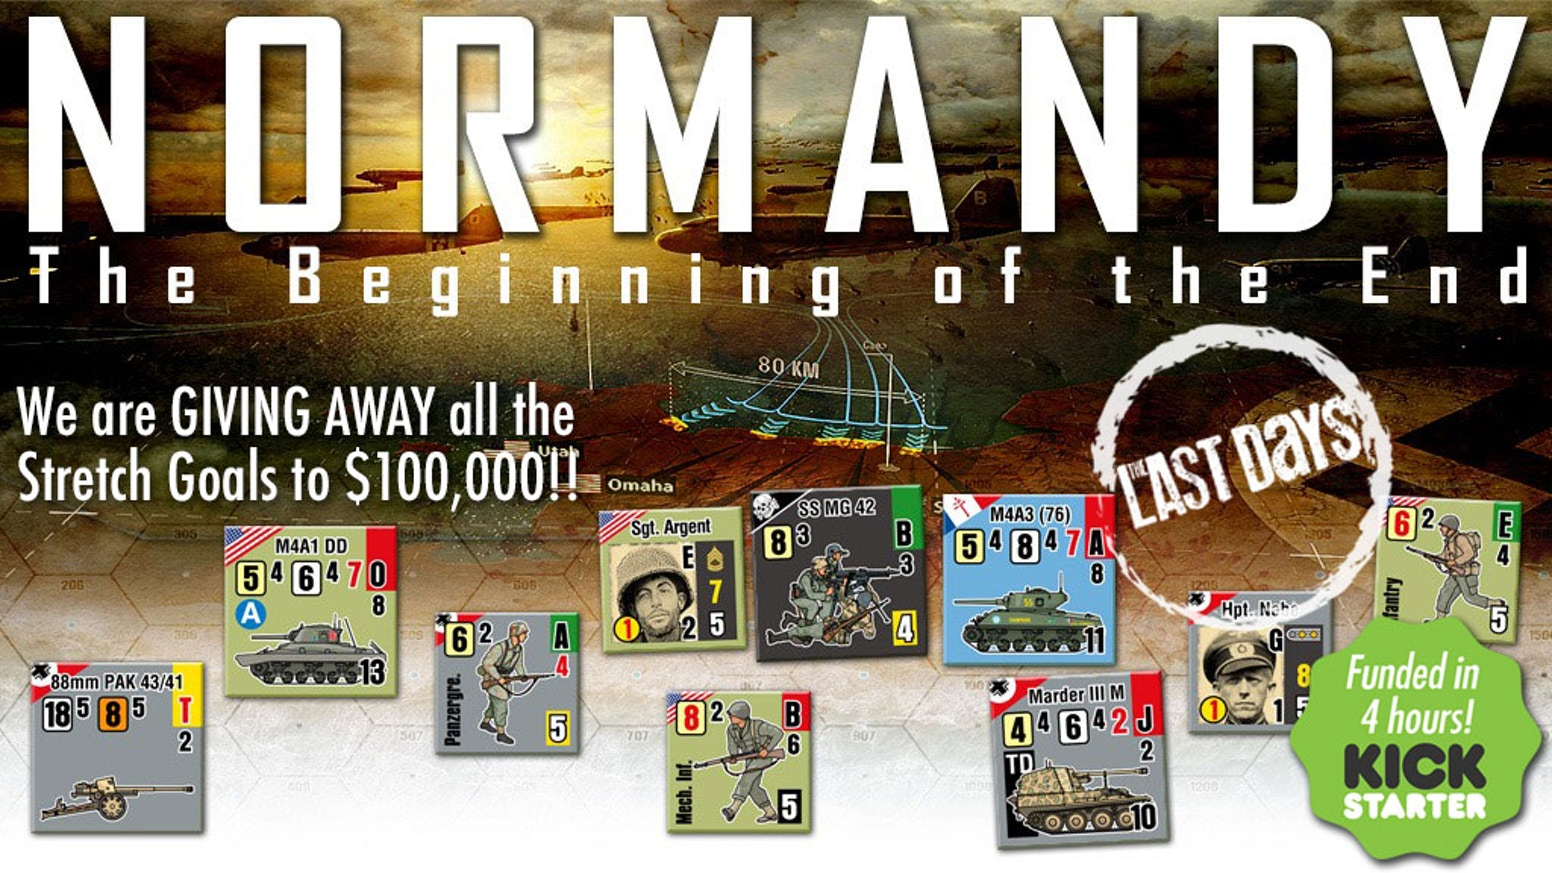 Normandy, the Beginning of the End by Draco Ideas — Kickstarter